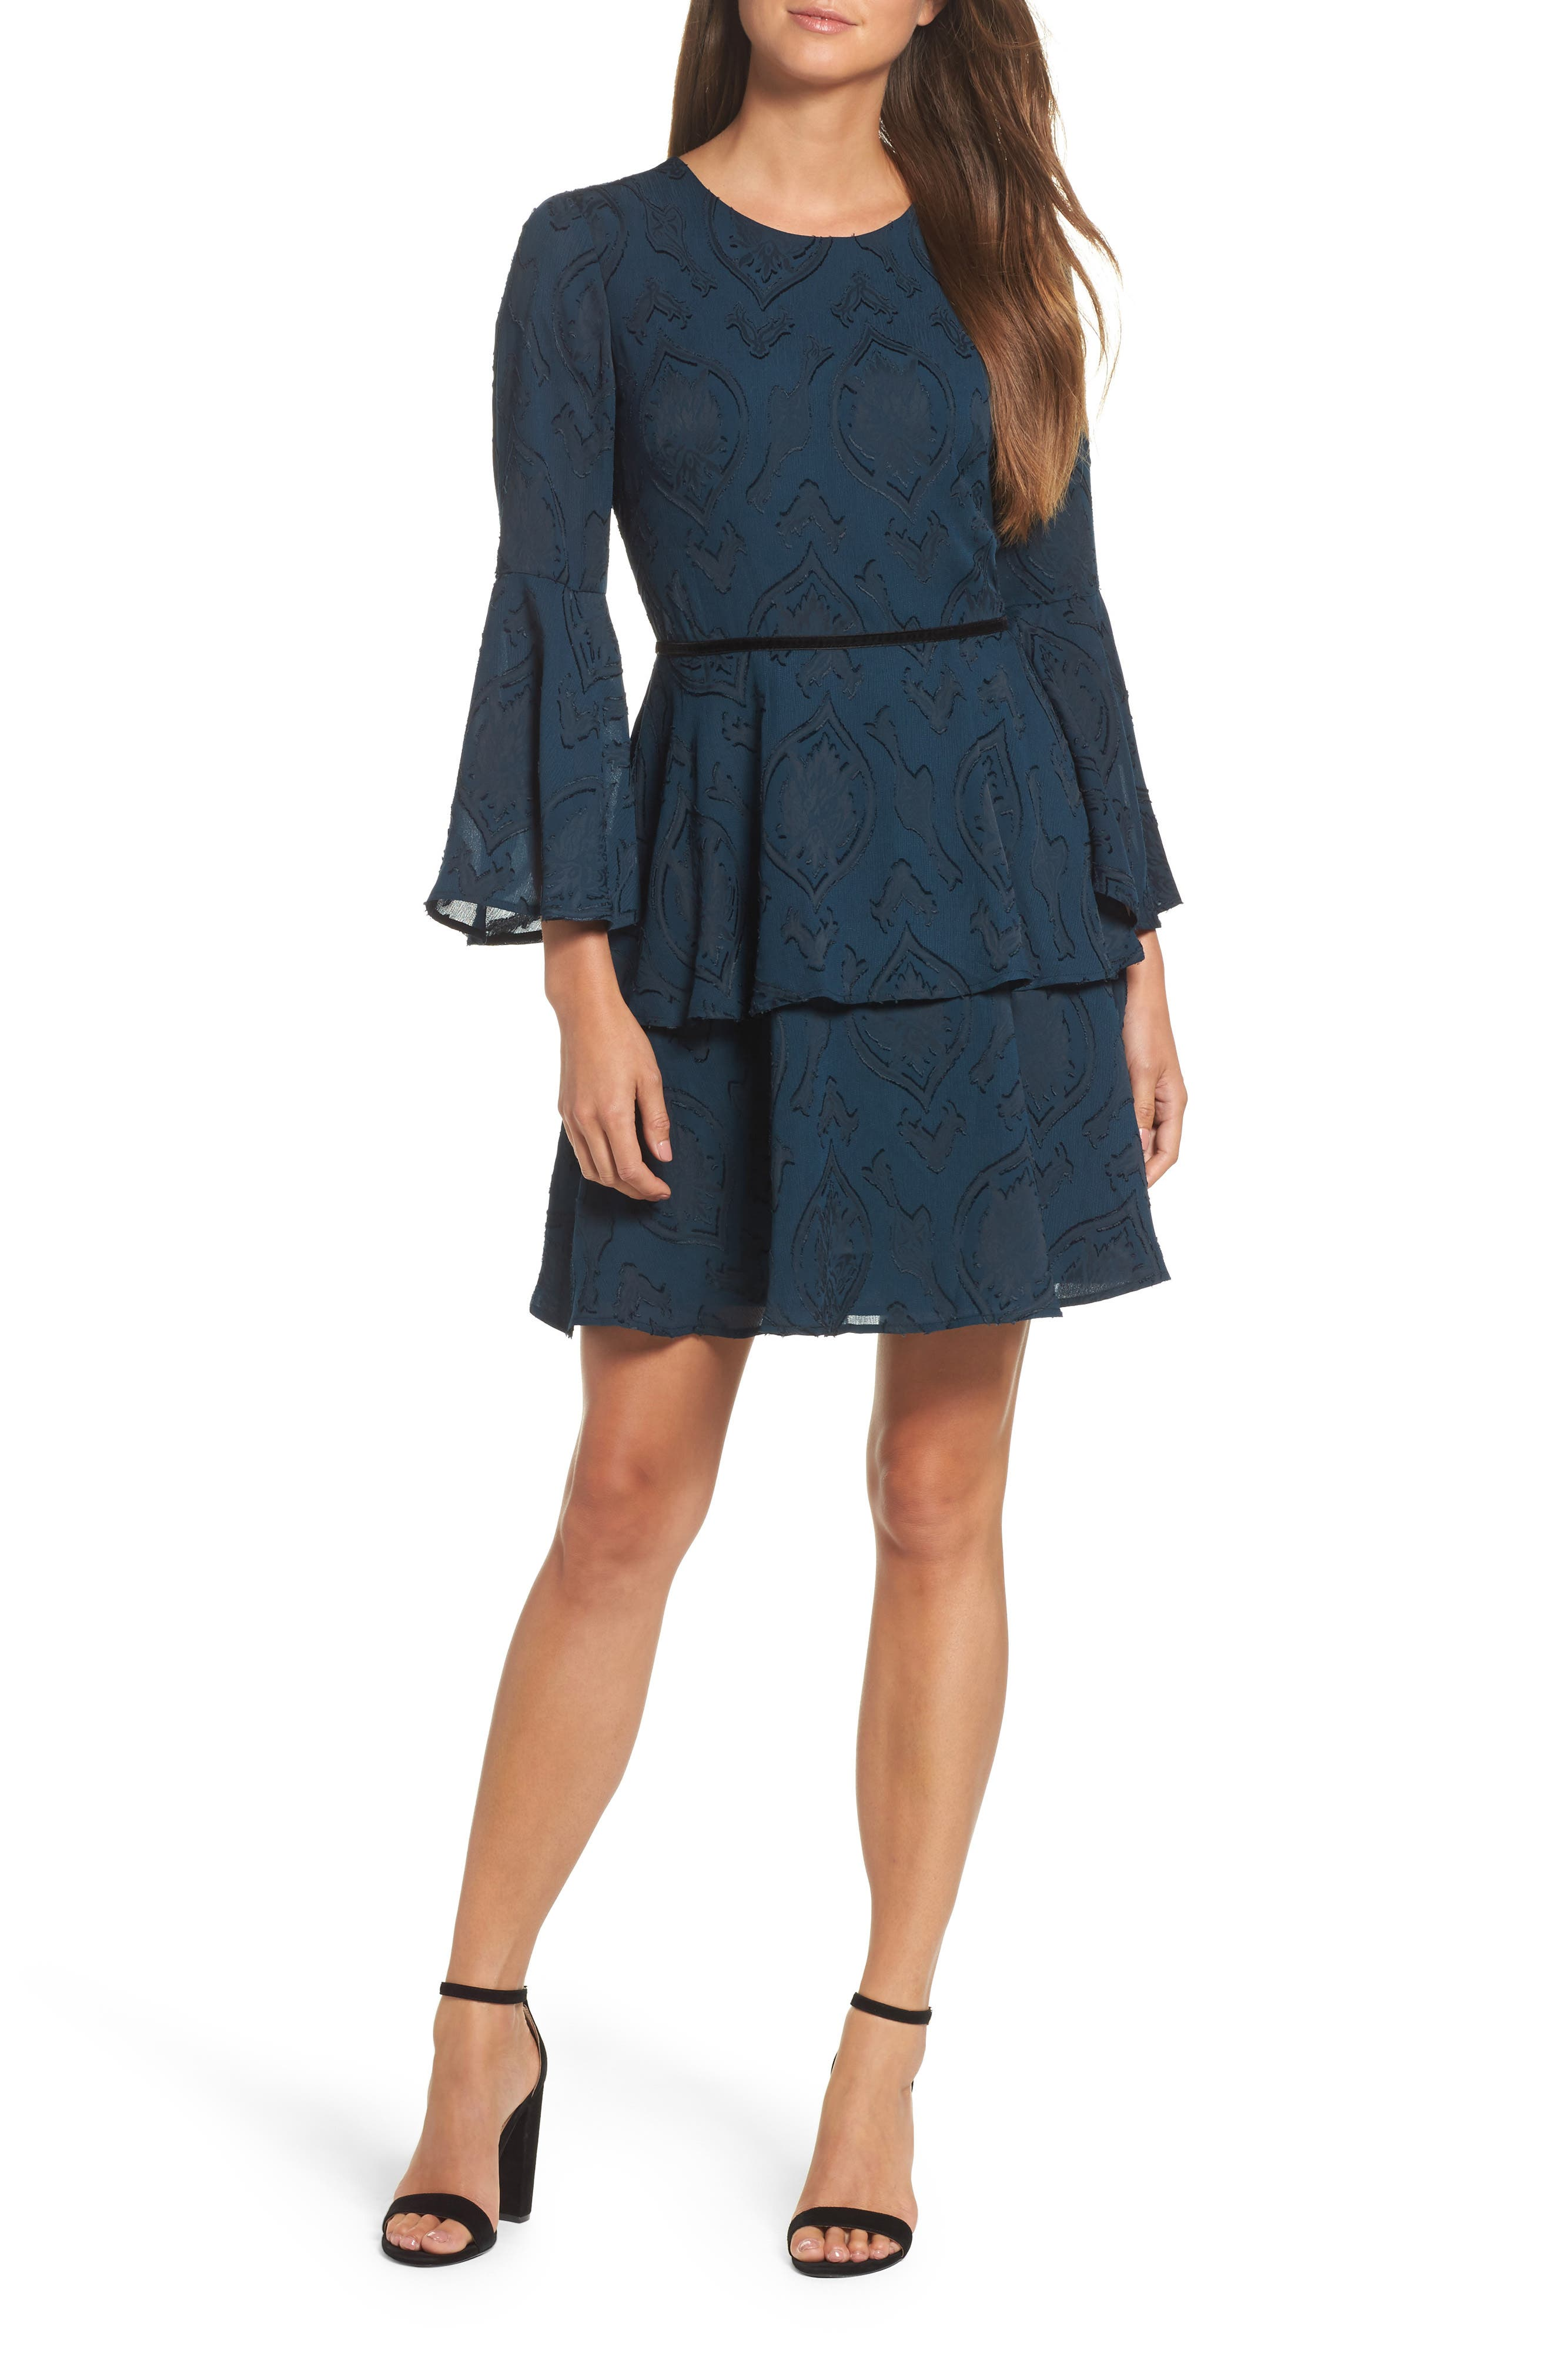 Alternate Image 1 Selected - Vince Camuto Tiered Chiffon Fit & Flare Dress